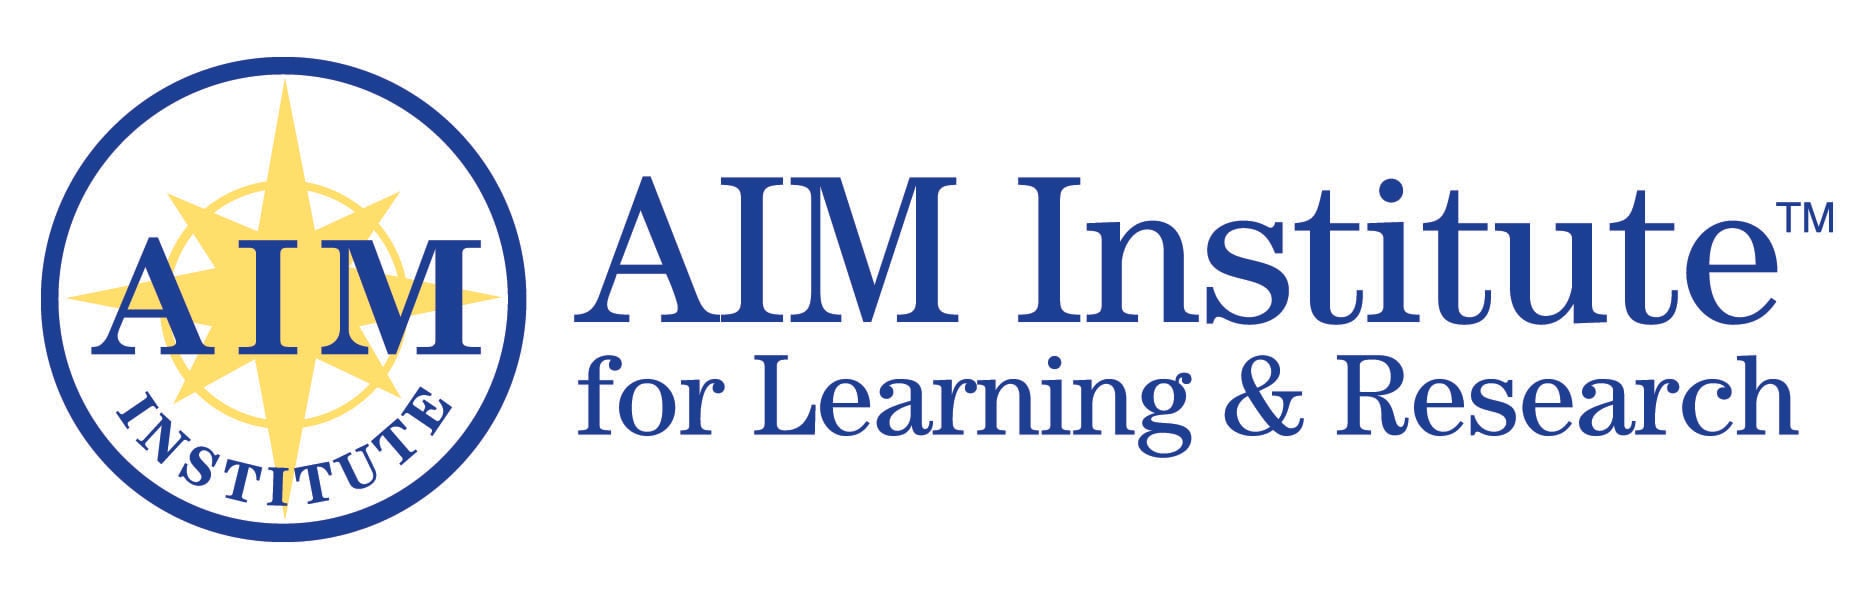 aim institute for learning research providing online and in